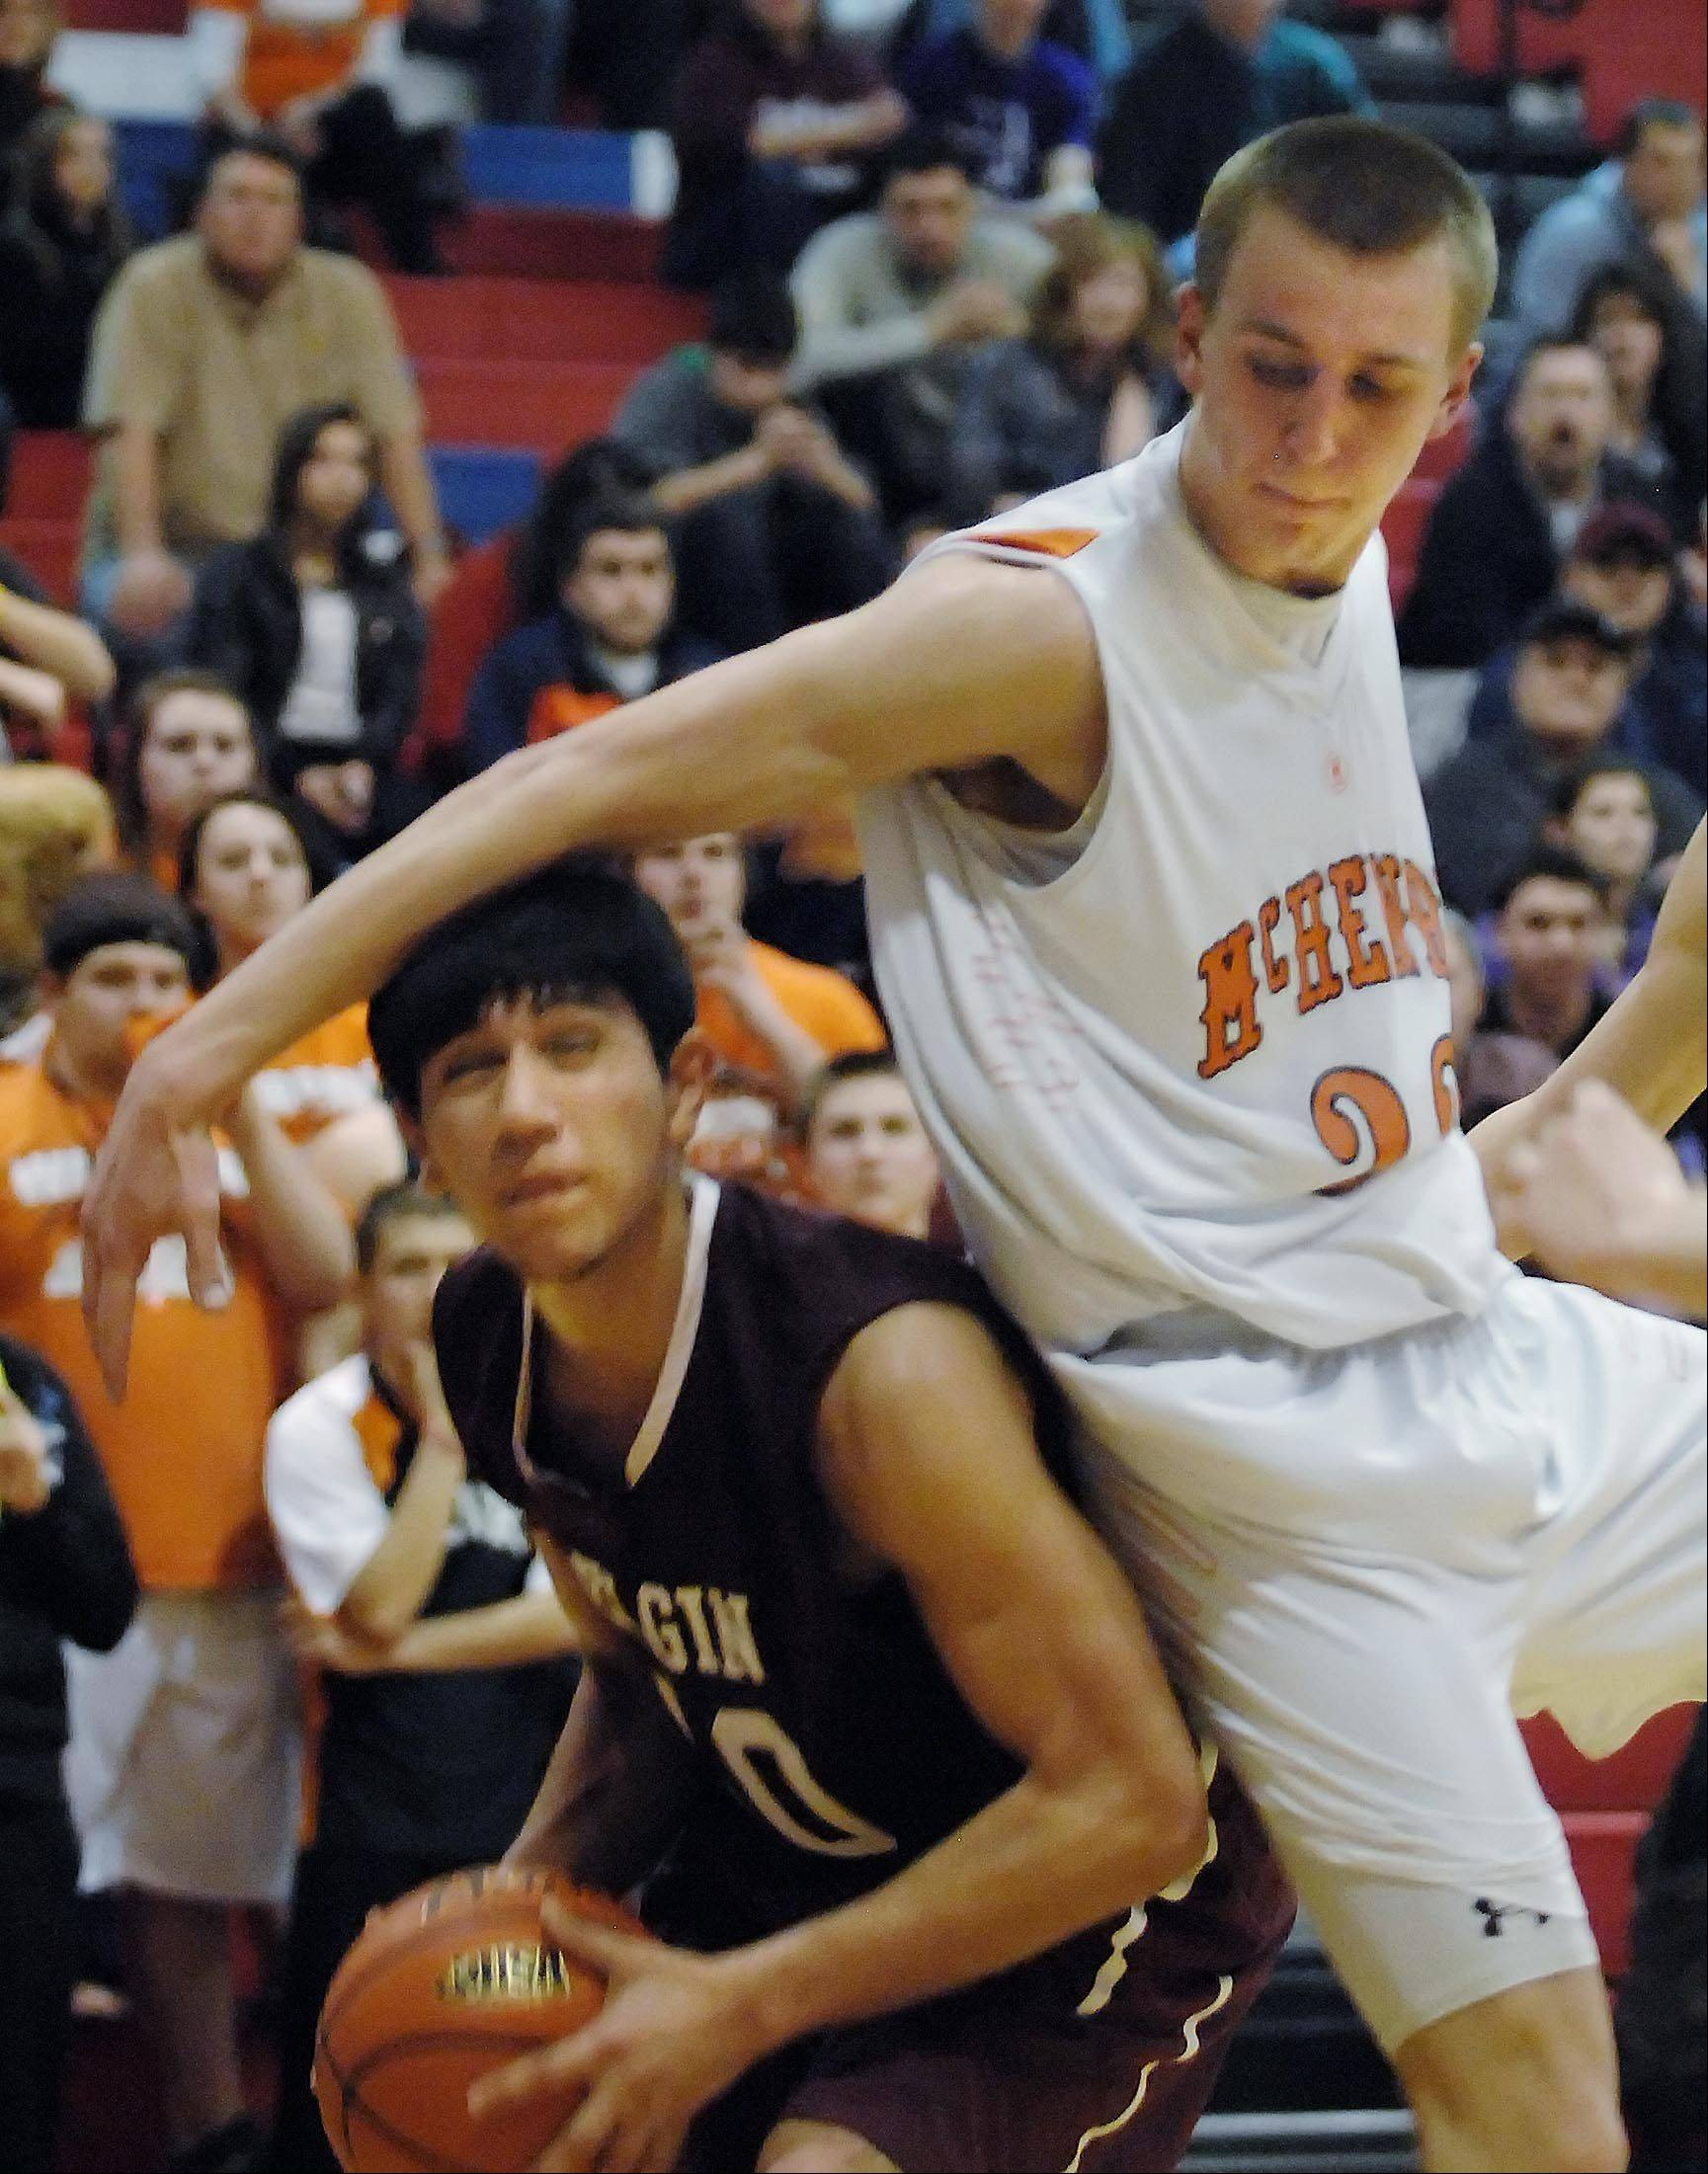 Elgin's Gerardo Mojica is fouled by McHenry's Jamie Rammel Wednesday in the Class 4A Dundee-Crown sectional semifinal game in Carpentersville.